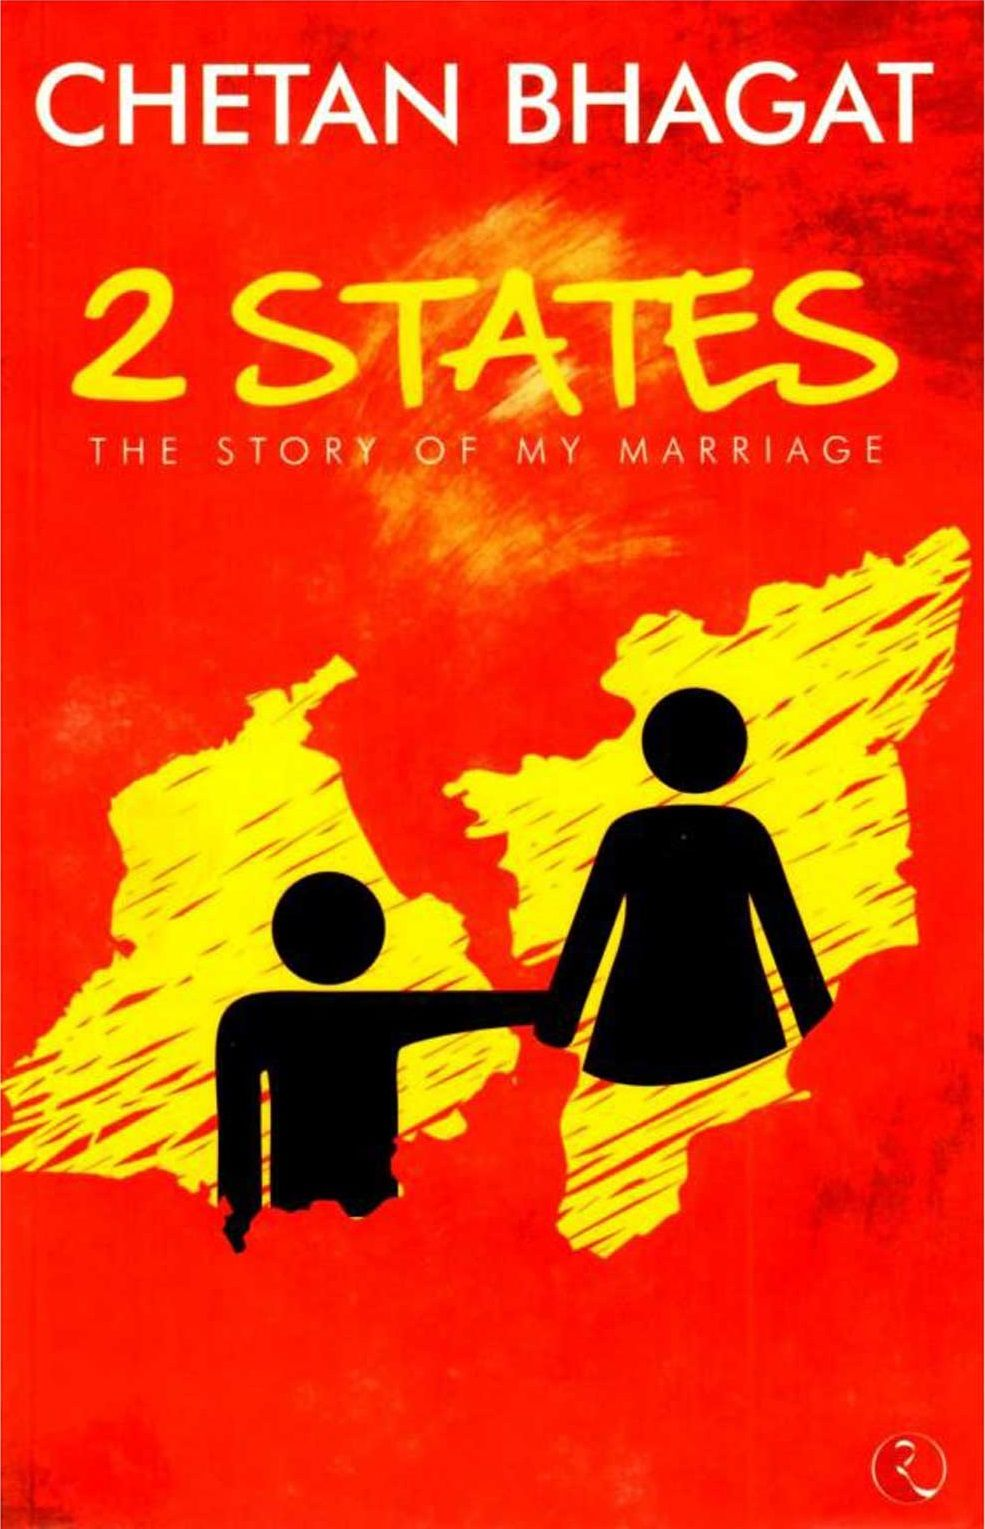 Chetan Bhagat 2 States The Story Of My Marriage Marriage Books